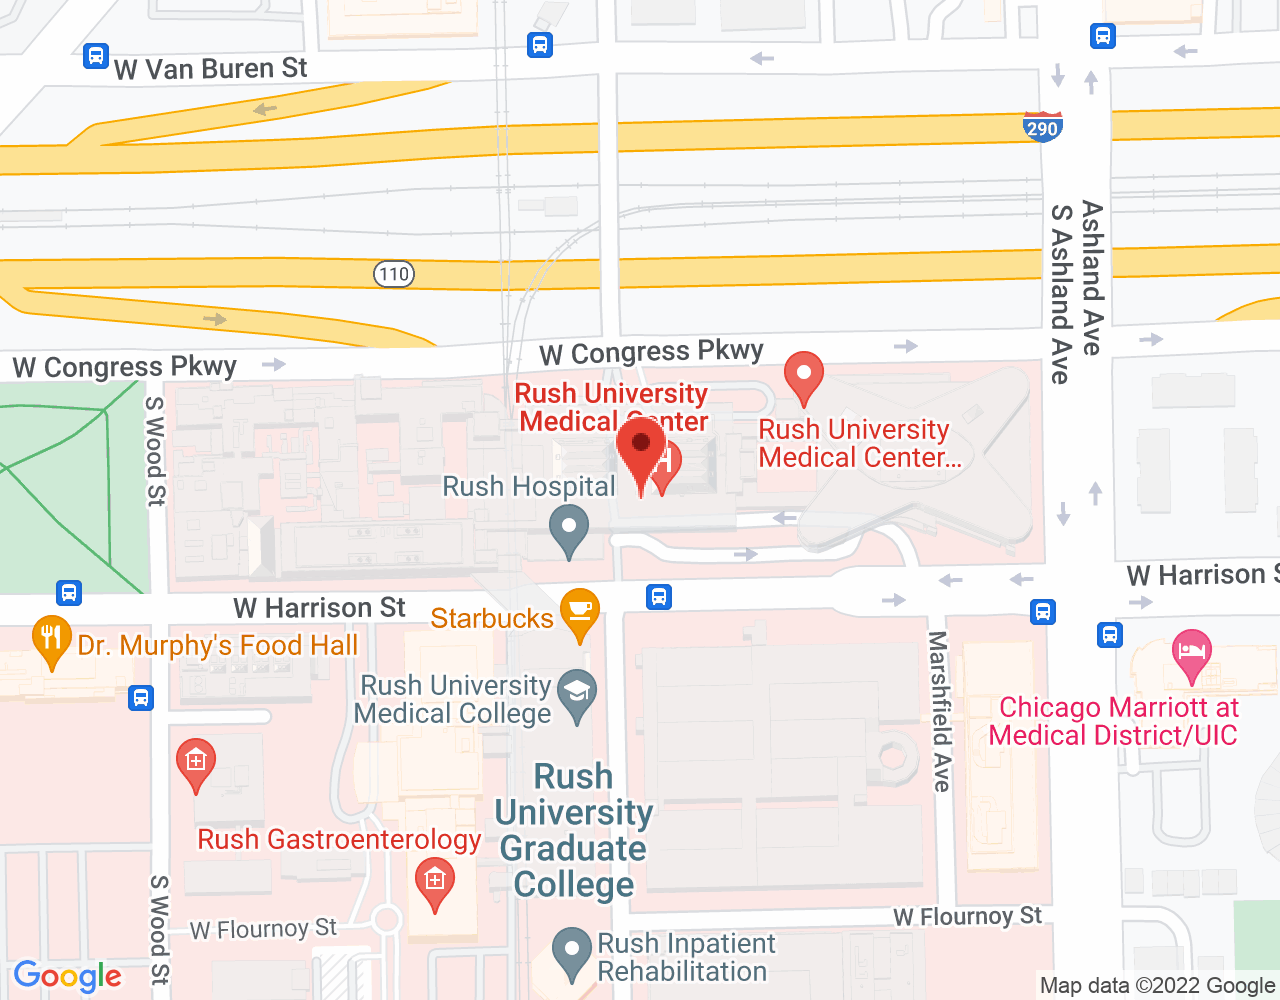 Google Map of Rush University